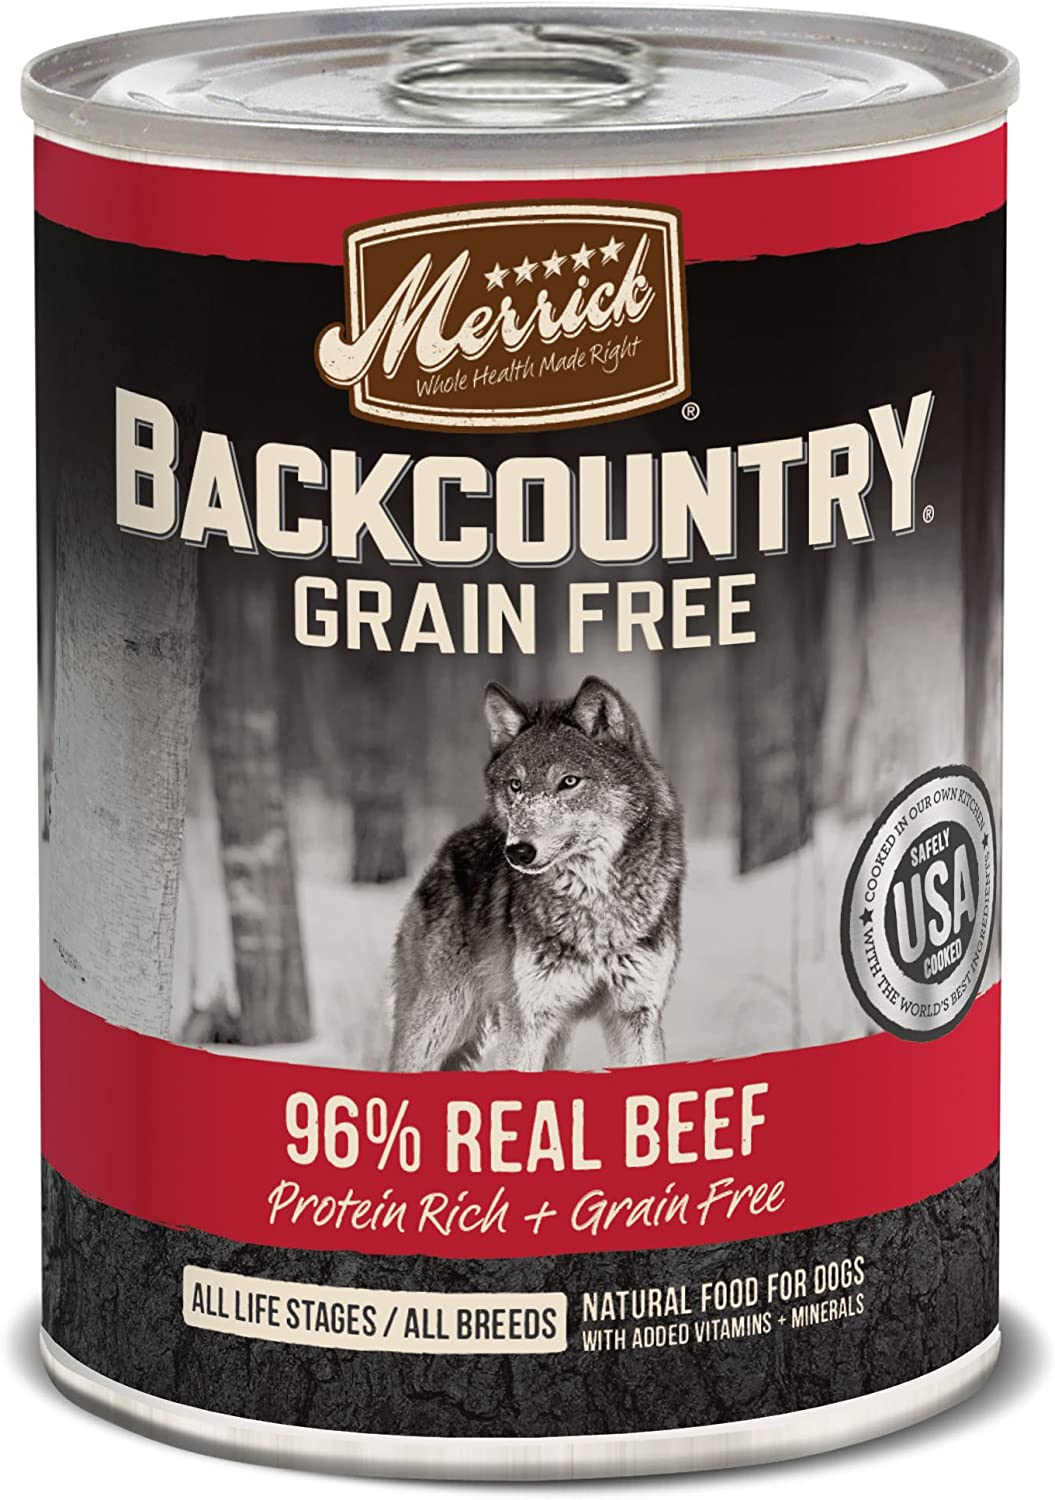 Merrick Backcountry Grain Free 96%  Real Beef Wet Dog Food, Case of 12, 12.7 oz.